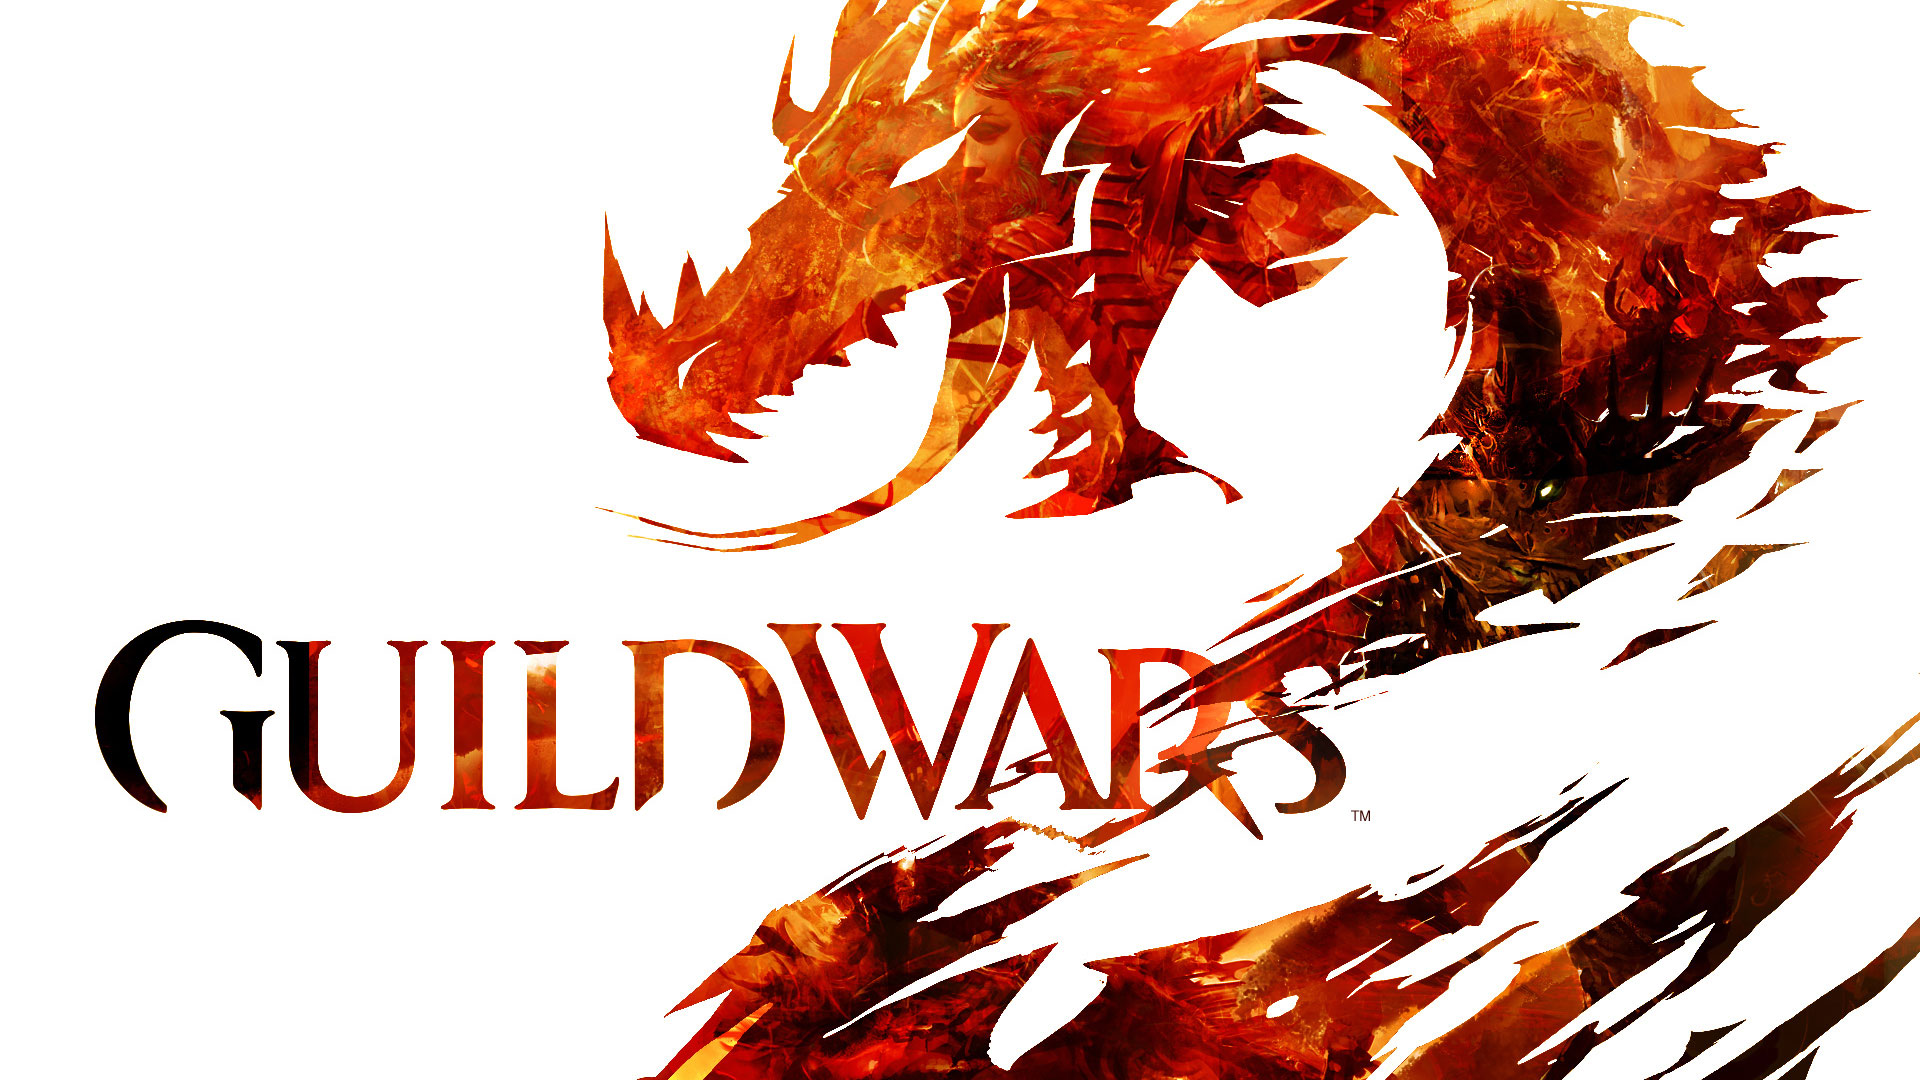 Guild Wars 2 (GW2): Which Classes to play?